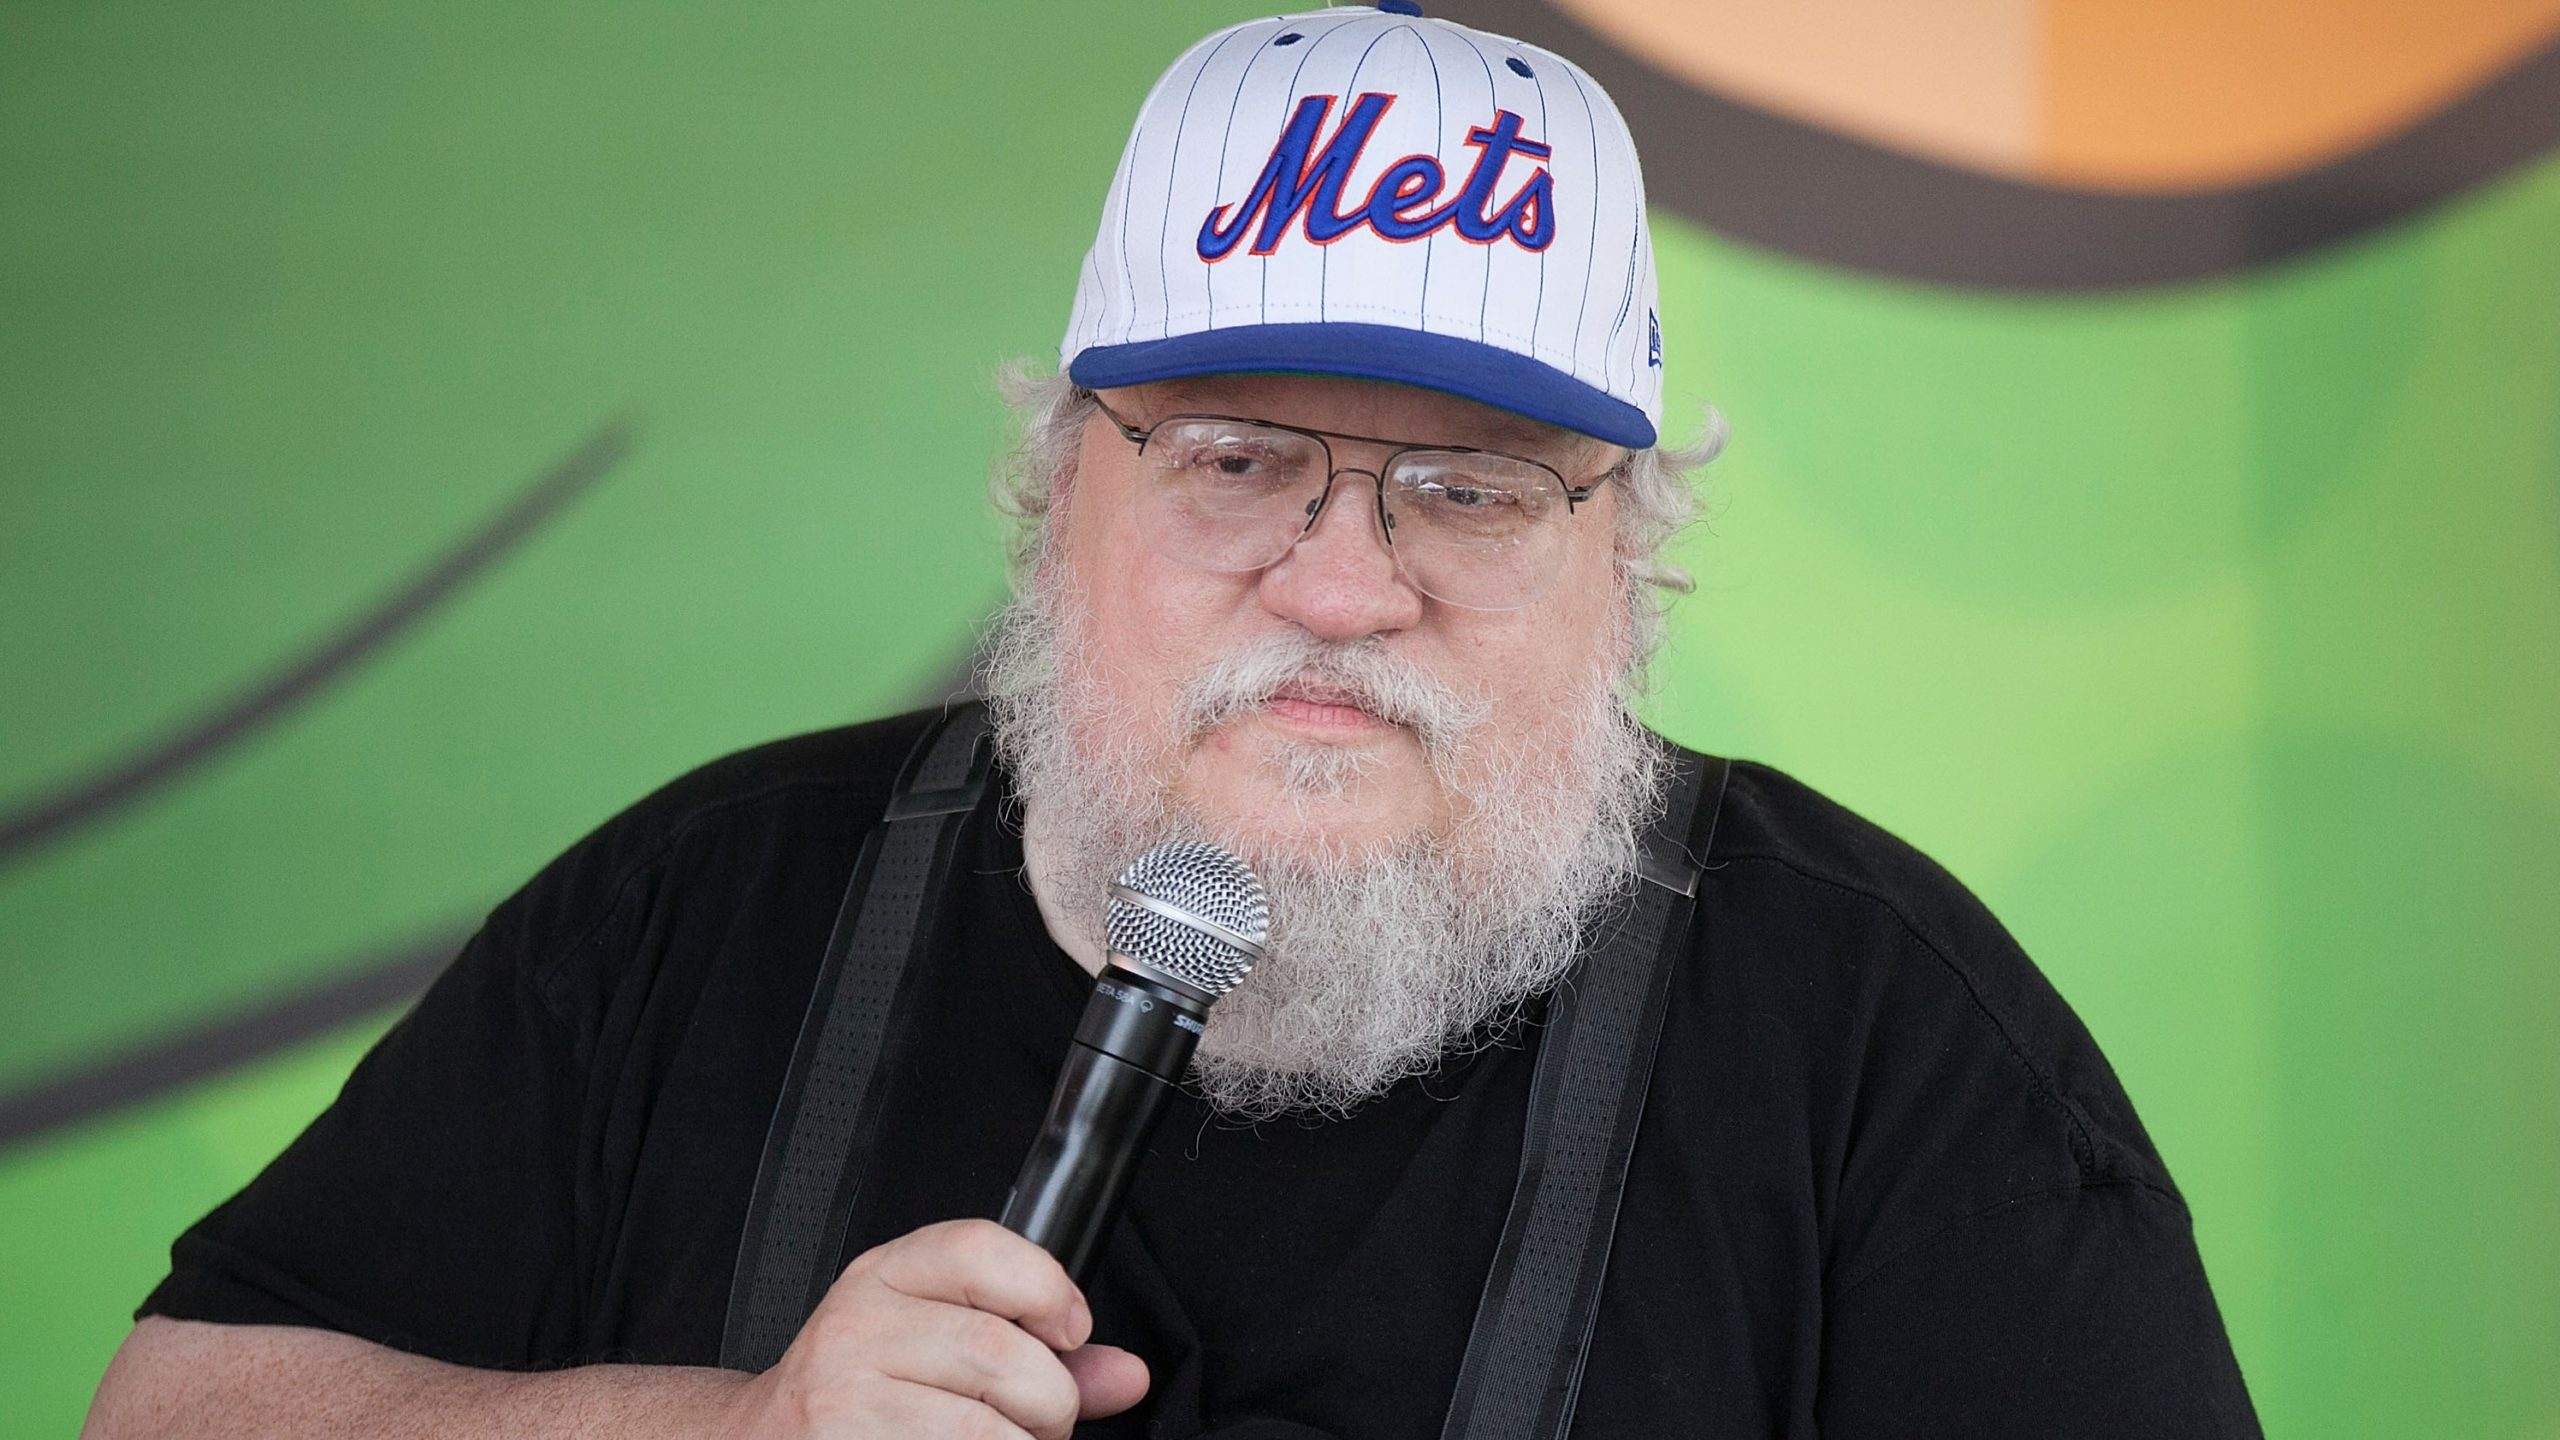 George RR Martin is taking the COVID-19 Vaccine